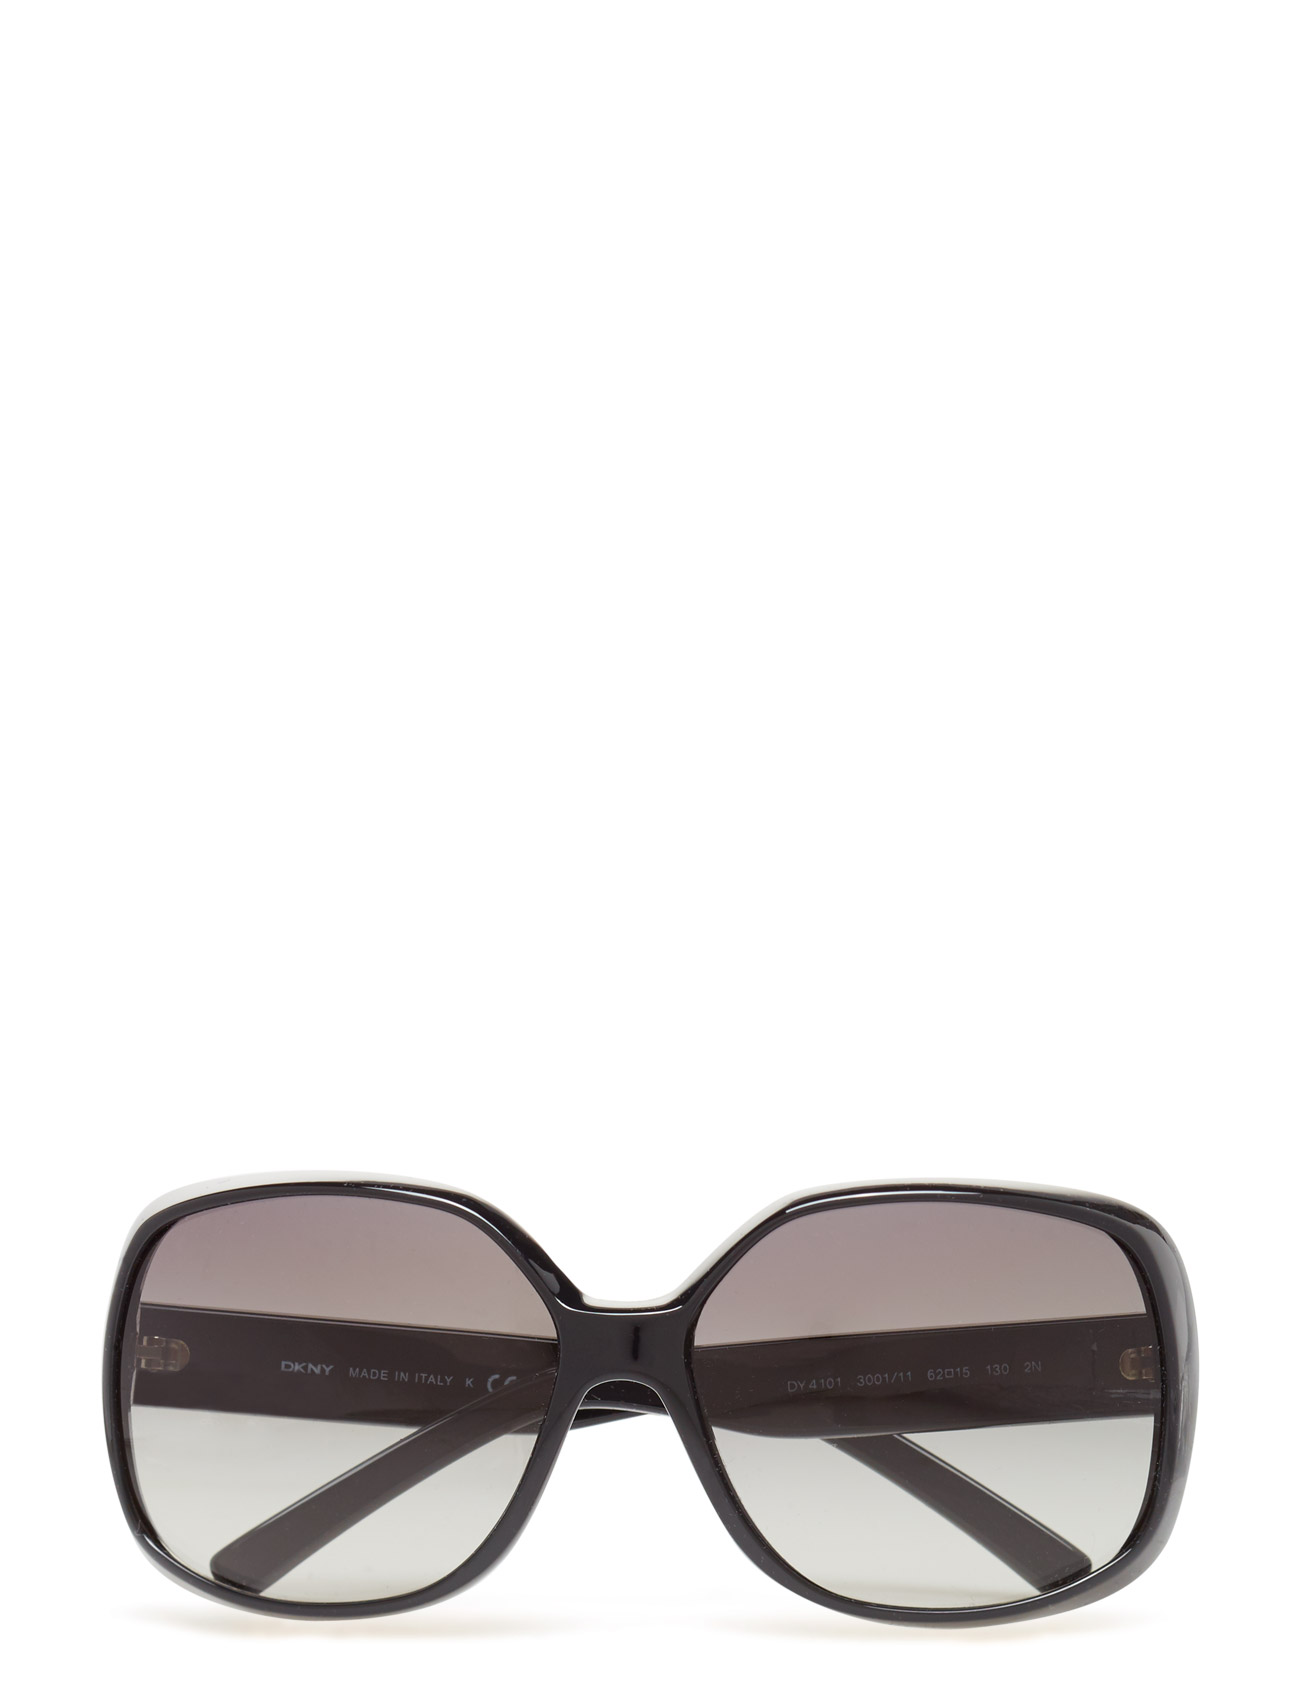 Essentials | Simple Logo DKNY Sunglasses Solbriller til Kvinder i